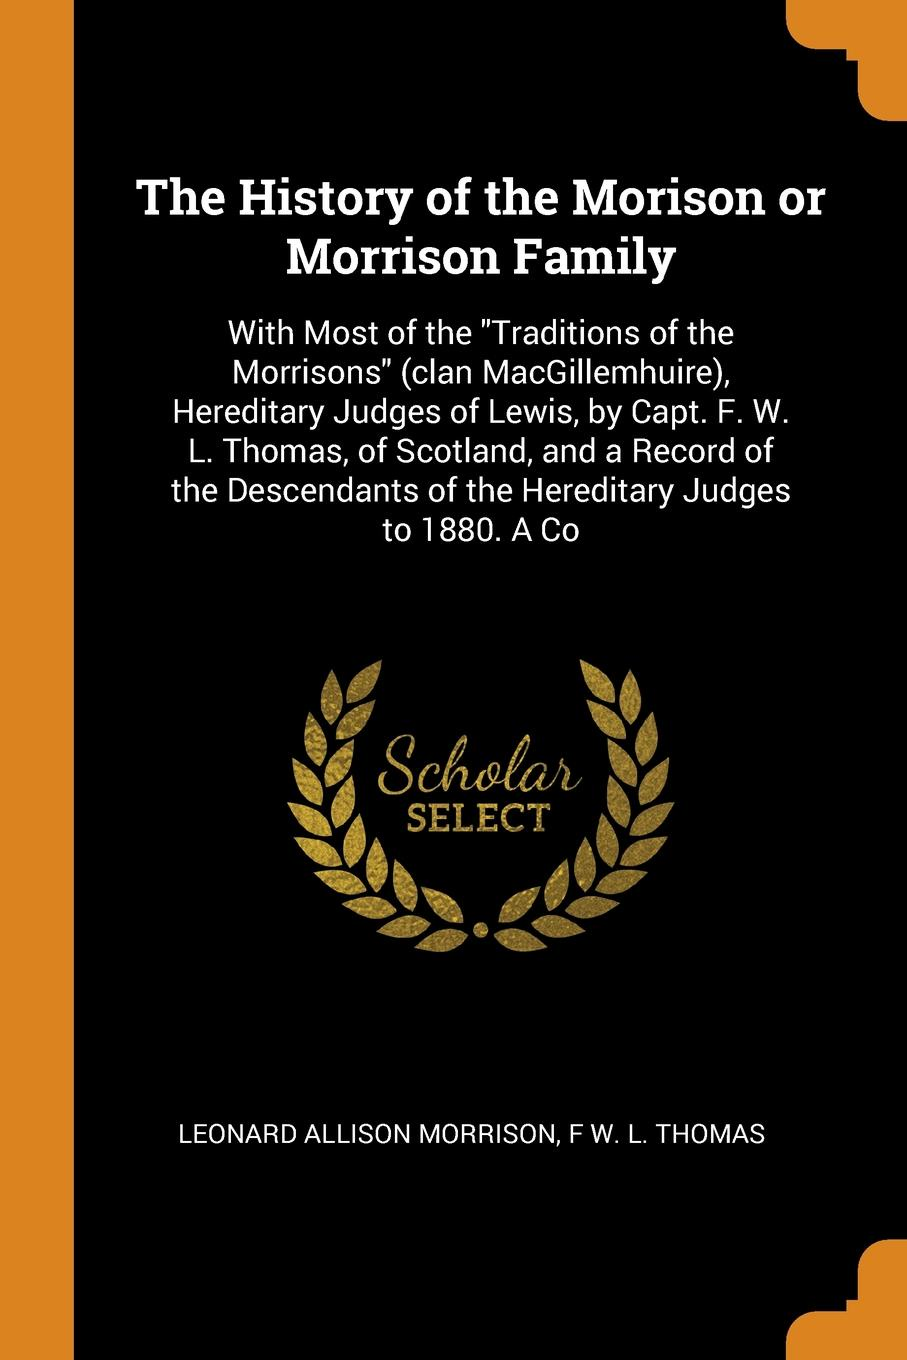 Leonard Allison Morrison, F W. L. Thomas The History of the Morison or Morrison Family. With Most of the Traditions of the Morrisons (clan MacGillemhuire), Hereditary Judges of Lewis, by Capt. F. W. L. Thomas, of Scotland, and a Record of the Descendants of the Hereditary Judges to 188... thomas j jenkins the judges of faith